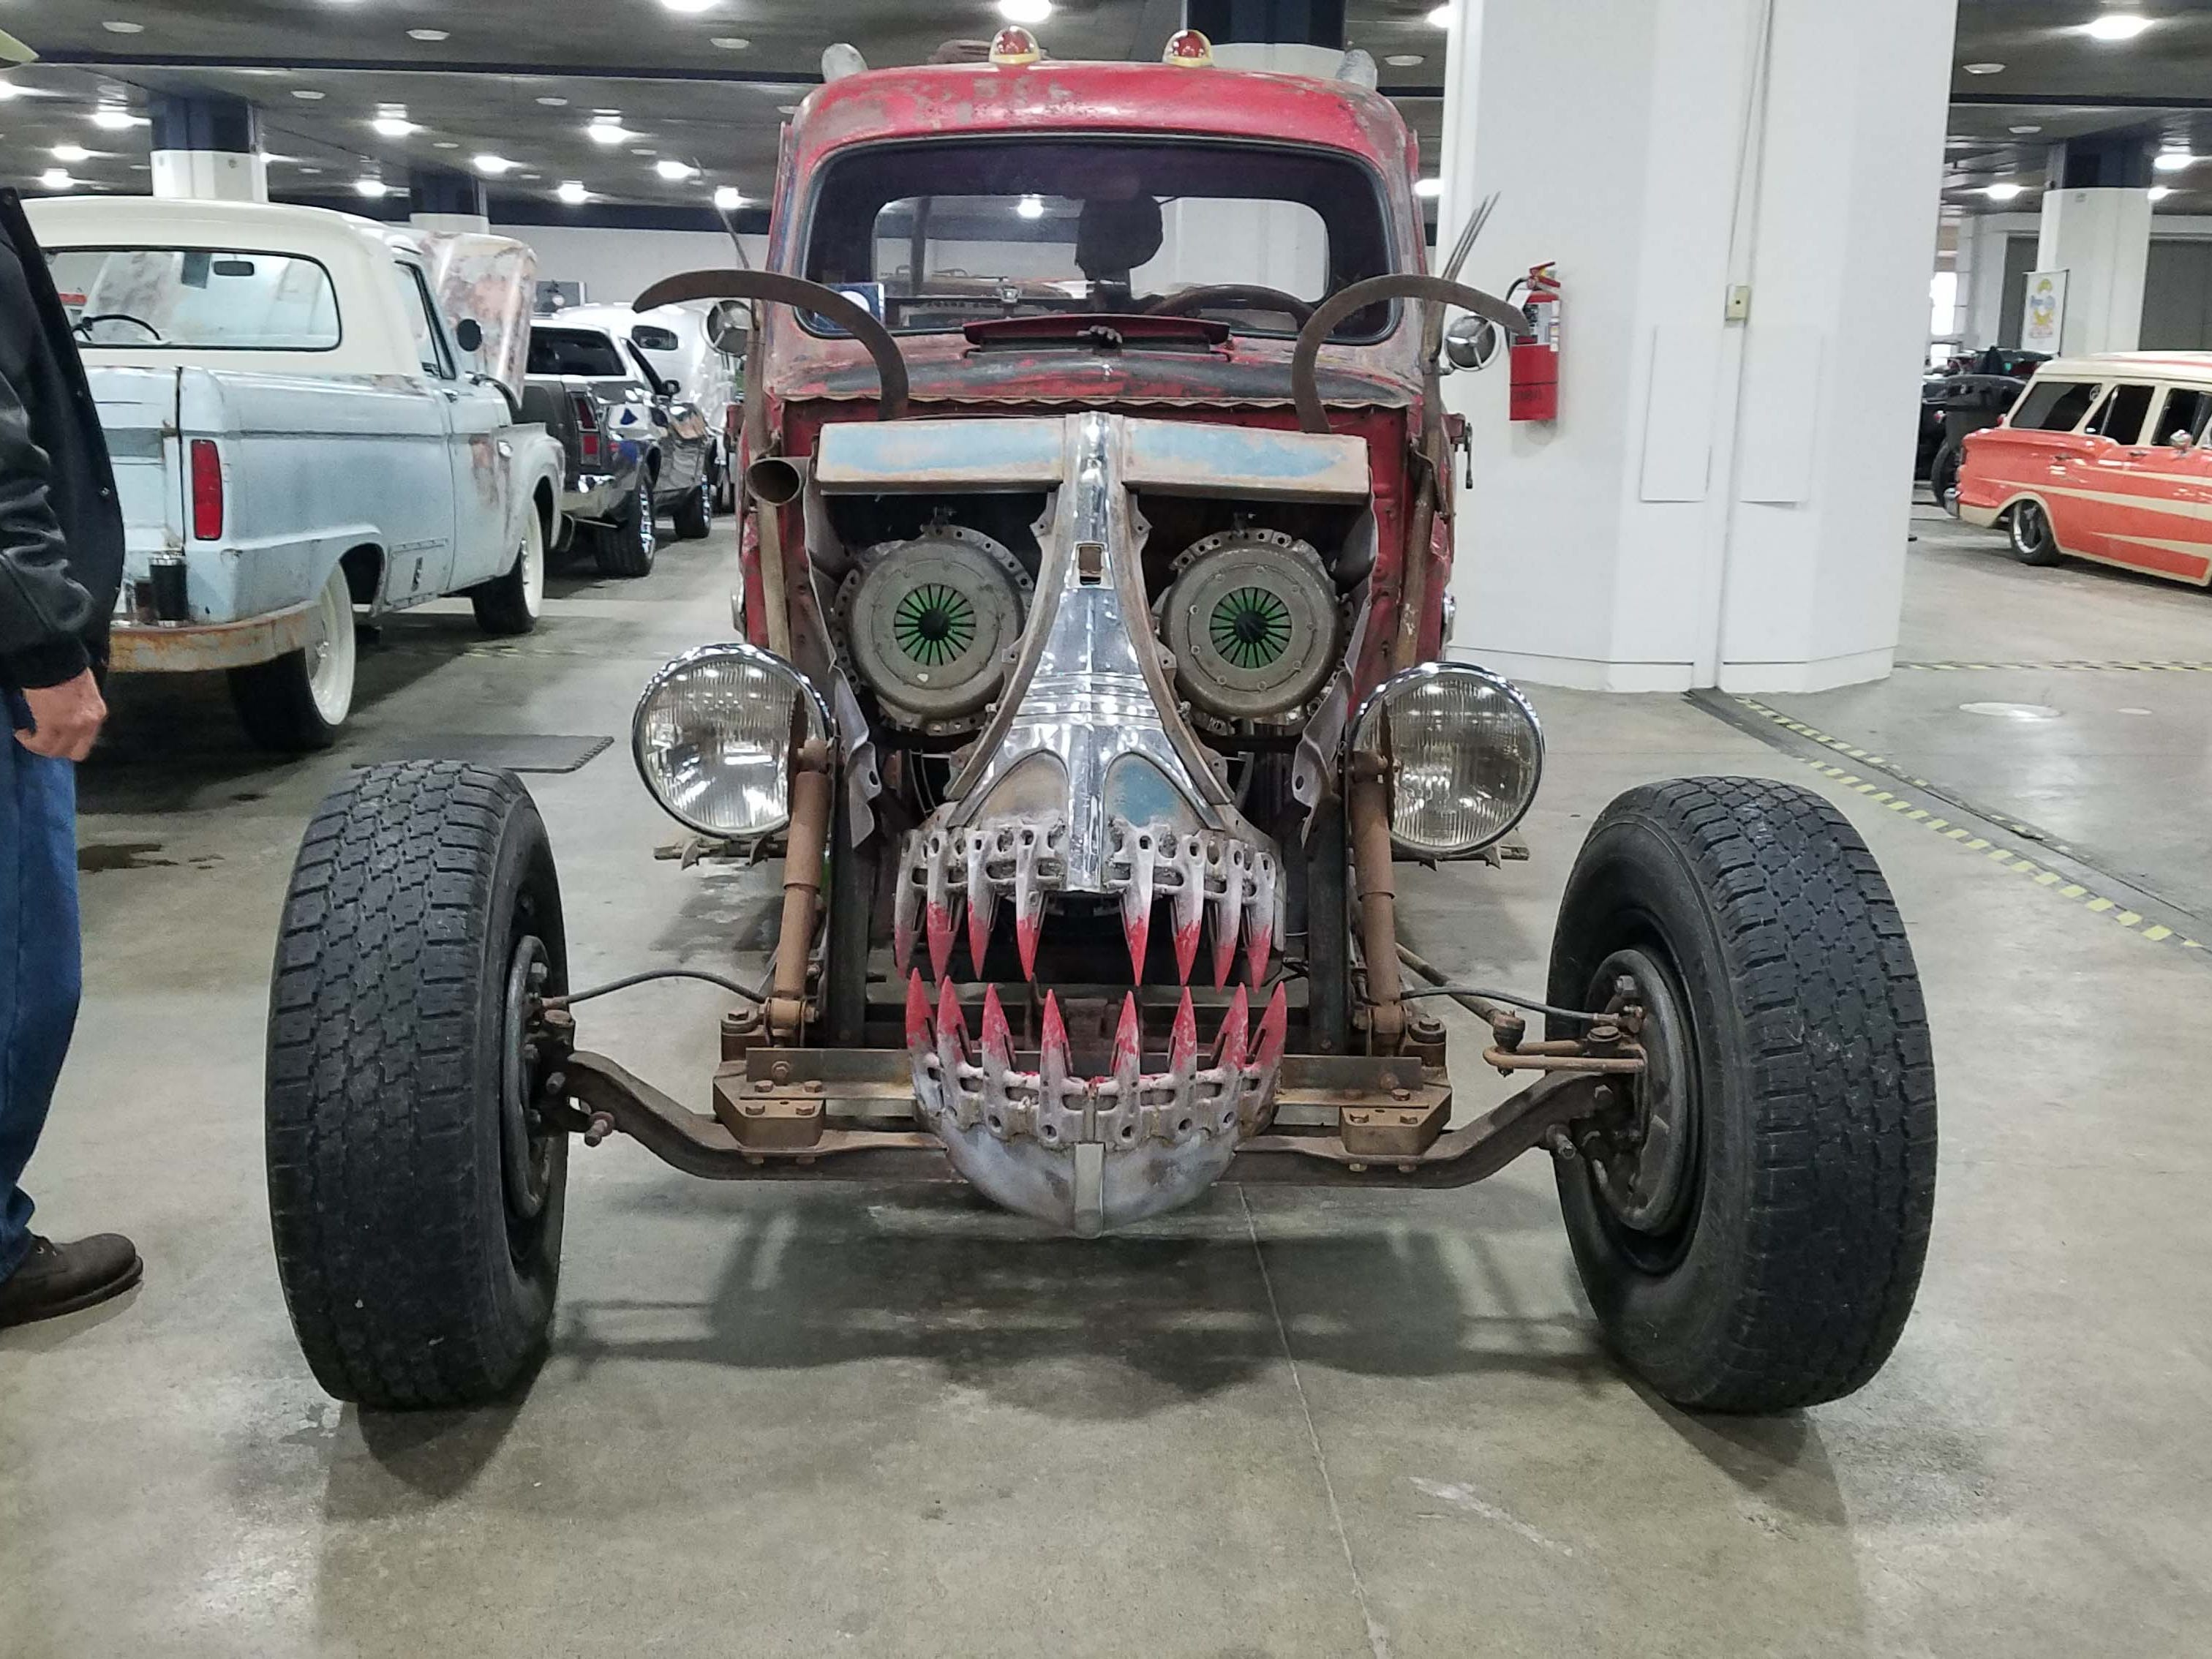 There's action in the basement at Autorama, too. This scary old jalopy will make you jump.